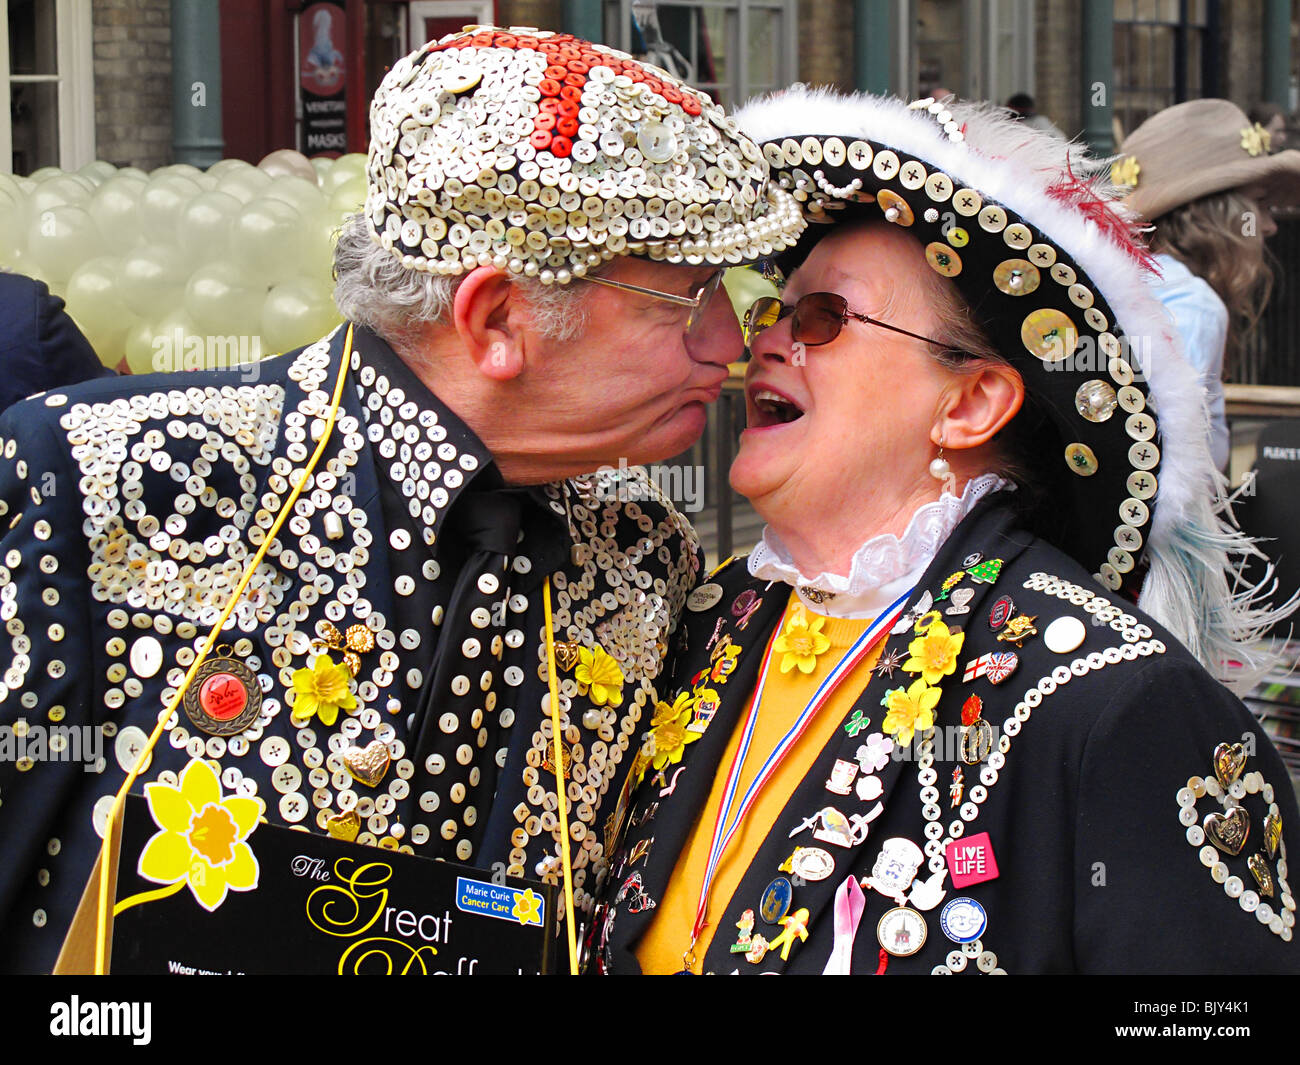 Pearly pucker king queen kings queens kissing London cockney - Stock Image